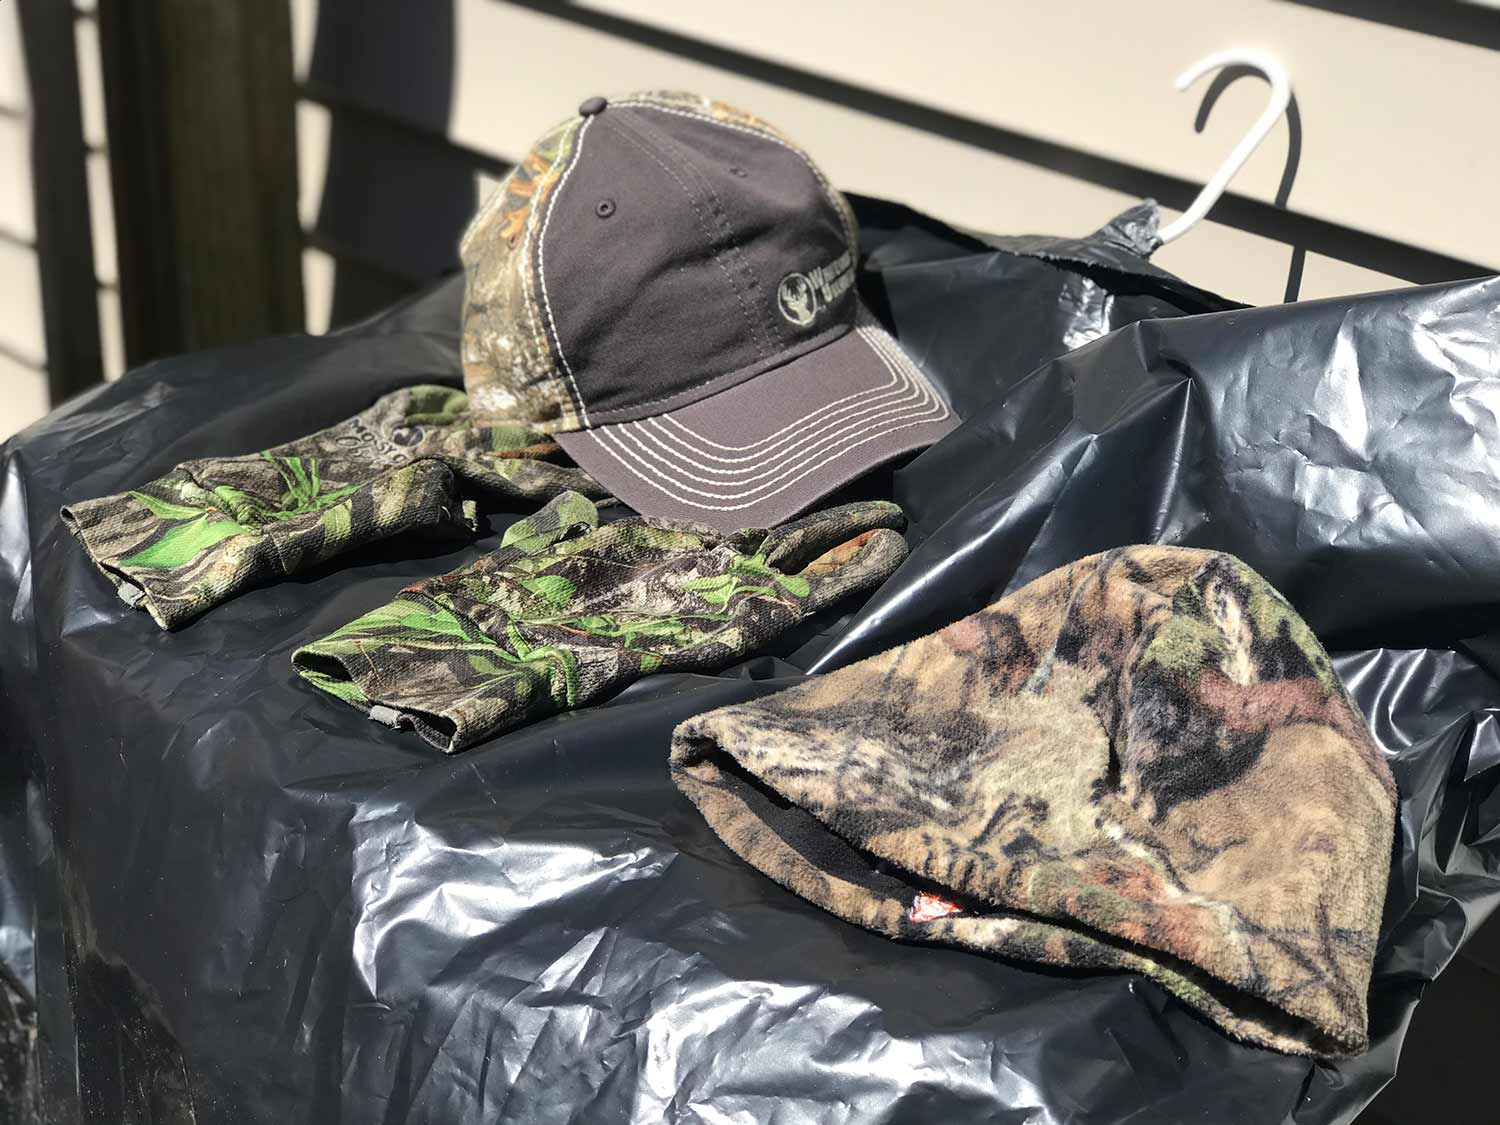 clothes to be treated for ticks.